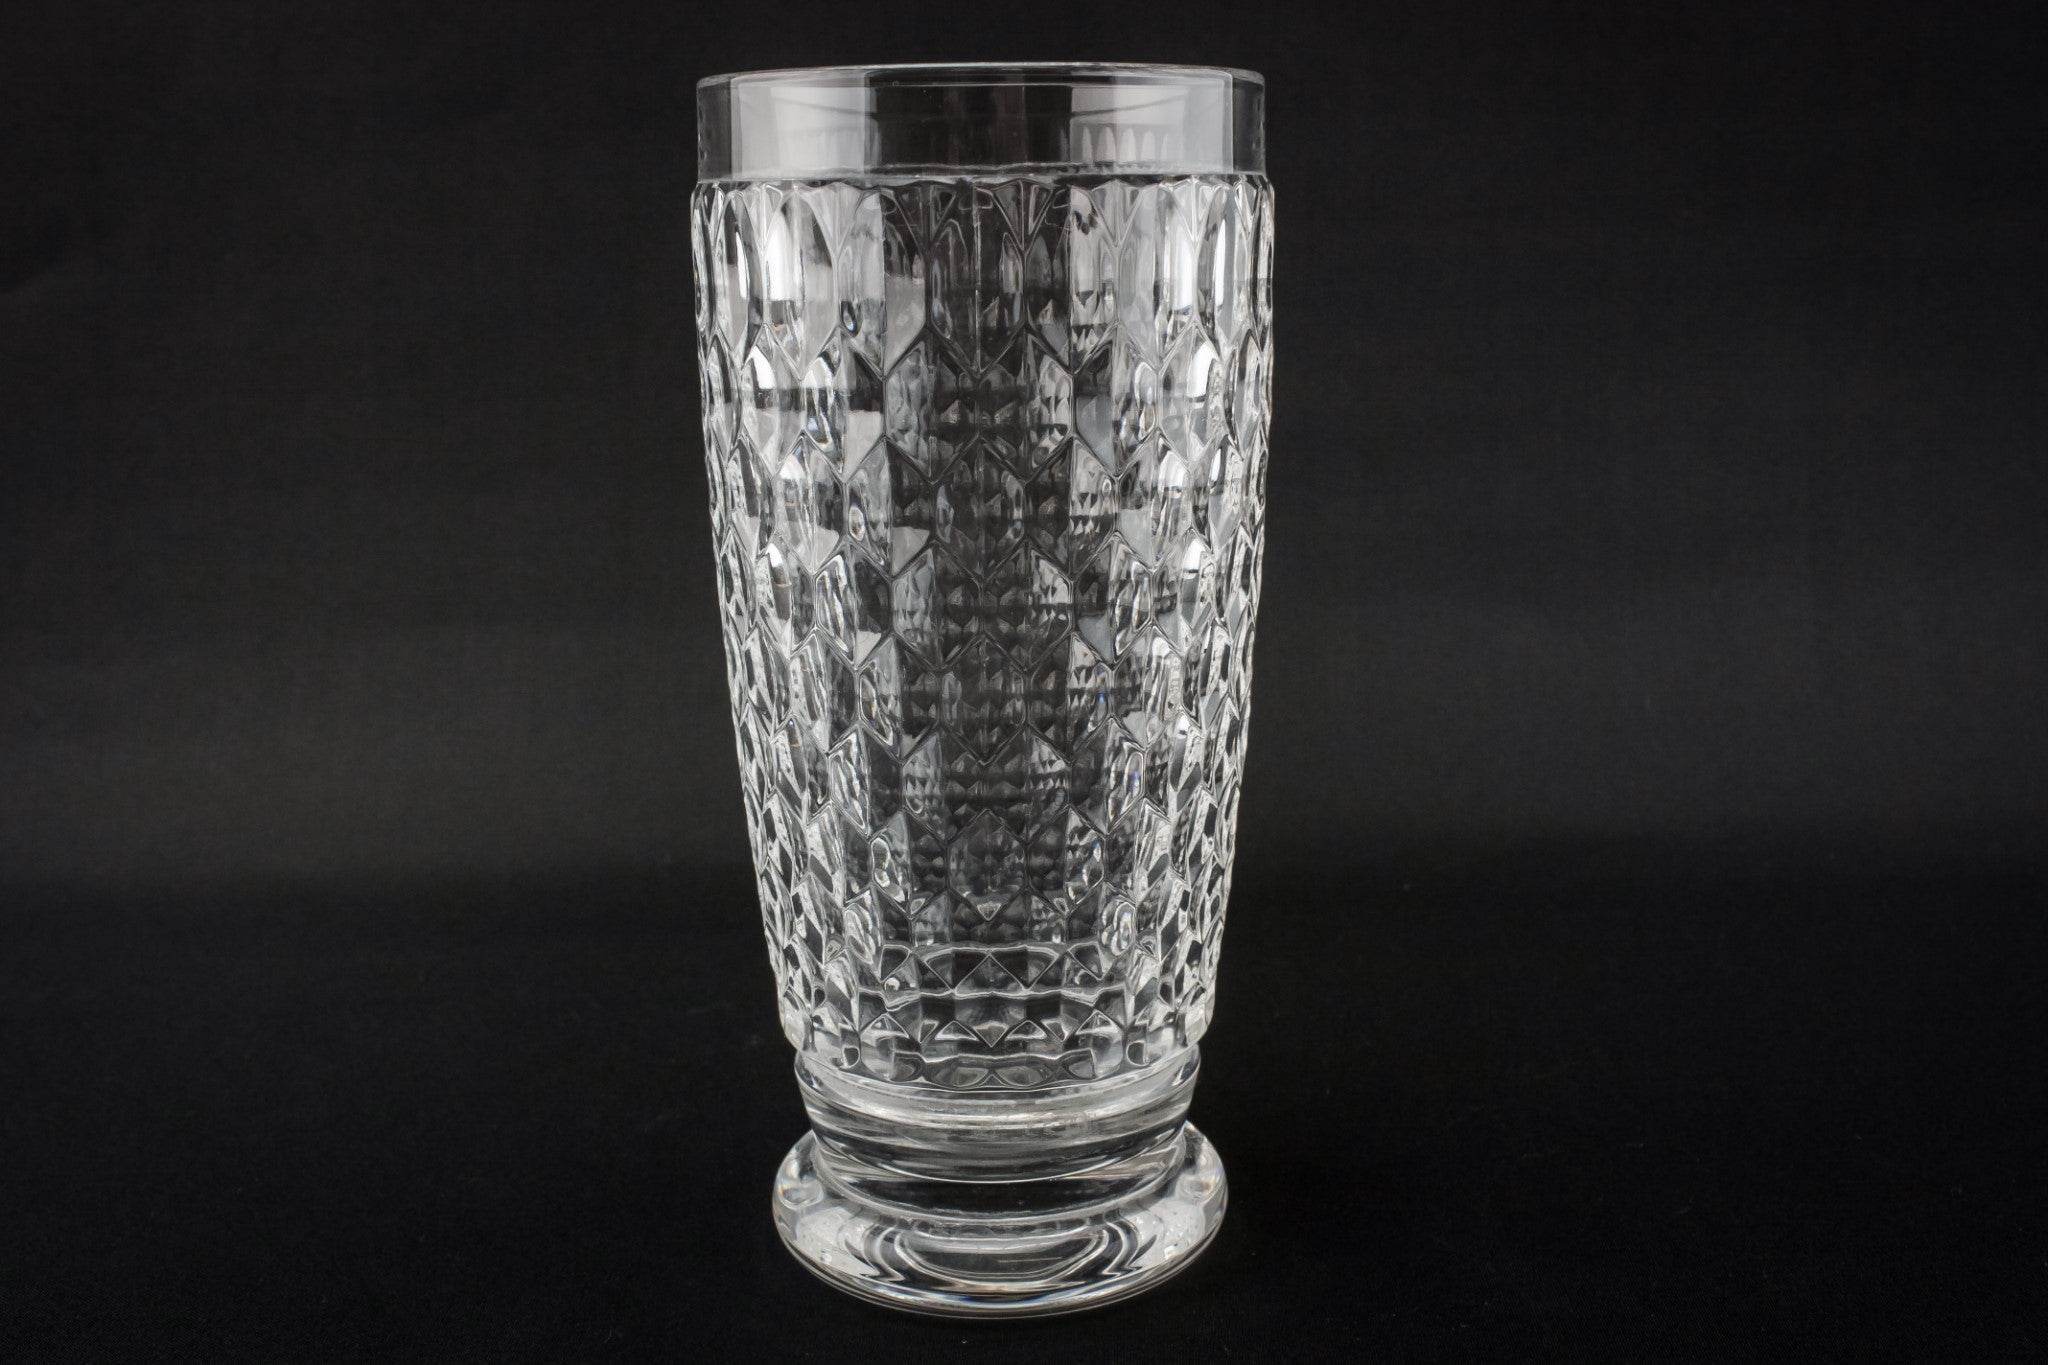 6 tumbler water glasses